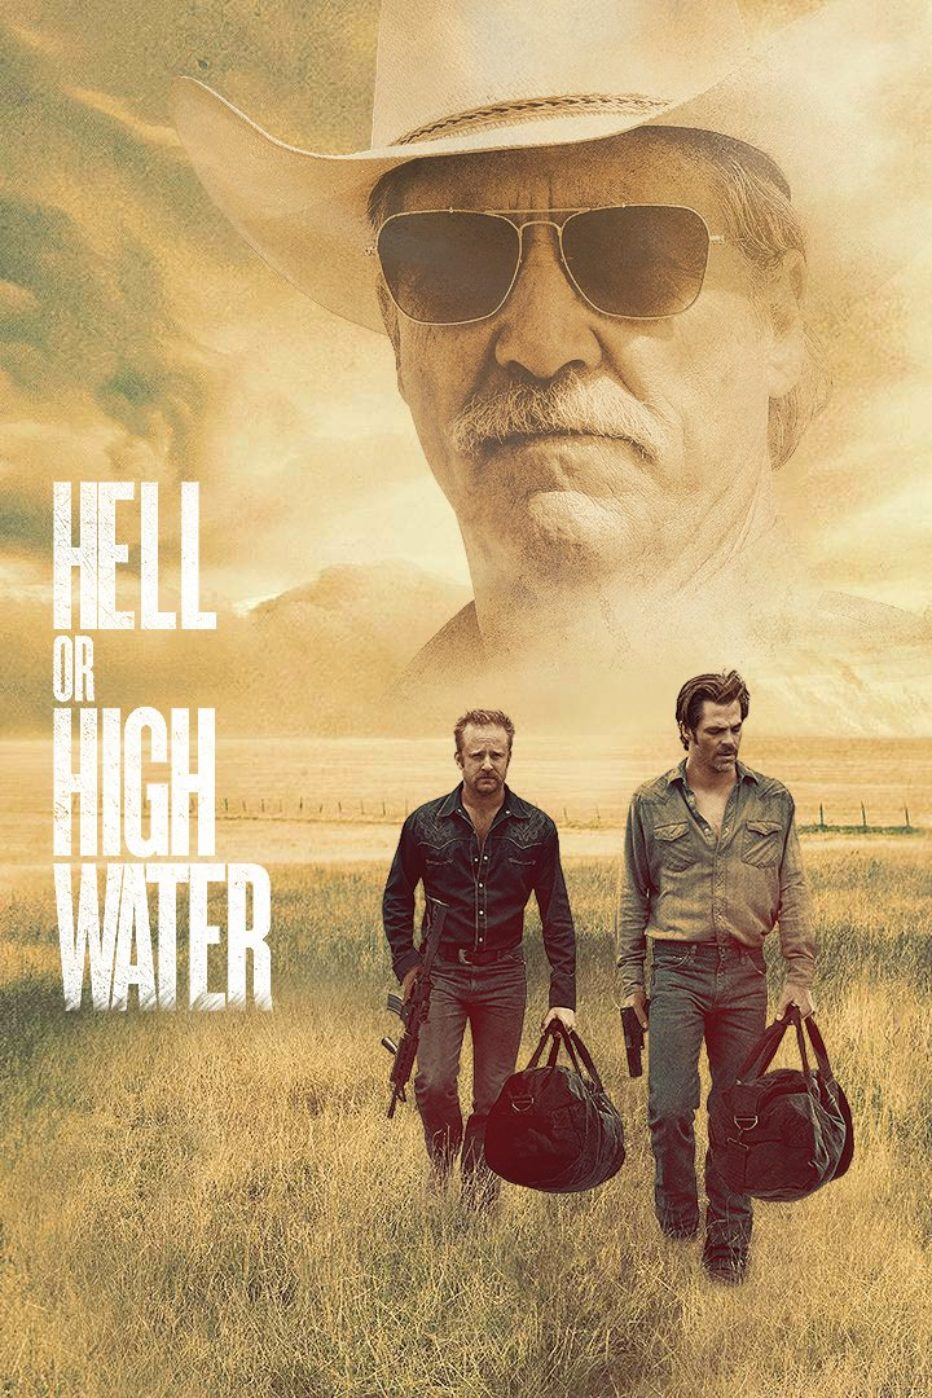 Hell or high water #Sitges2016